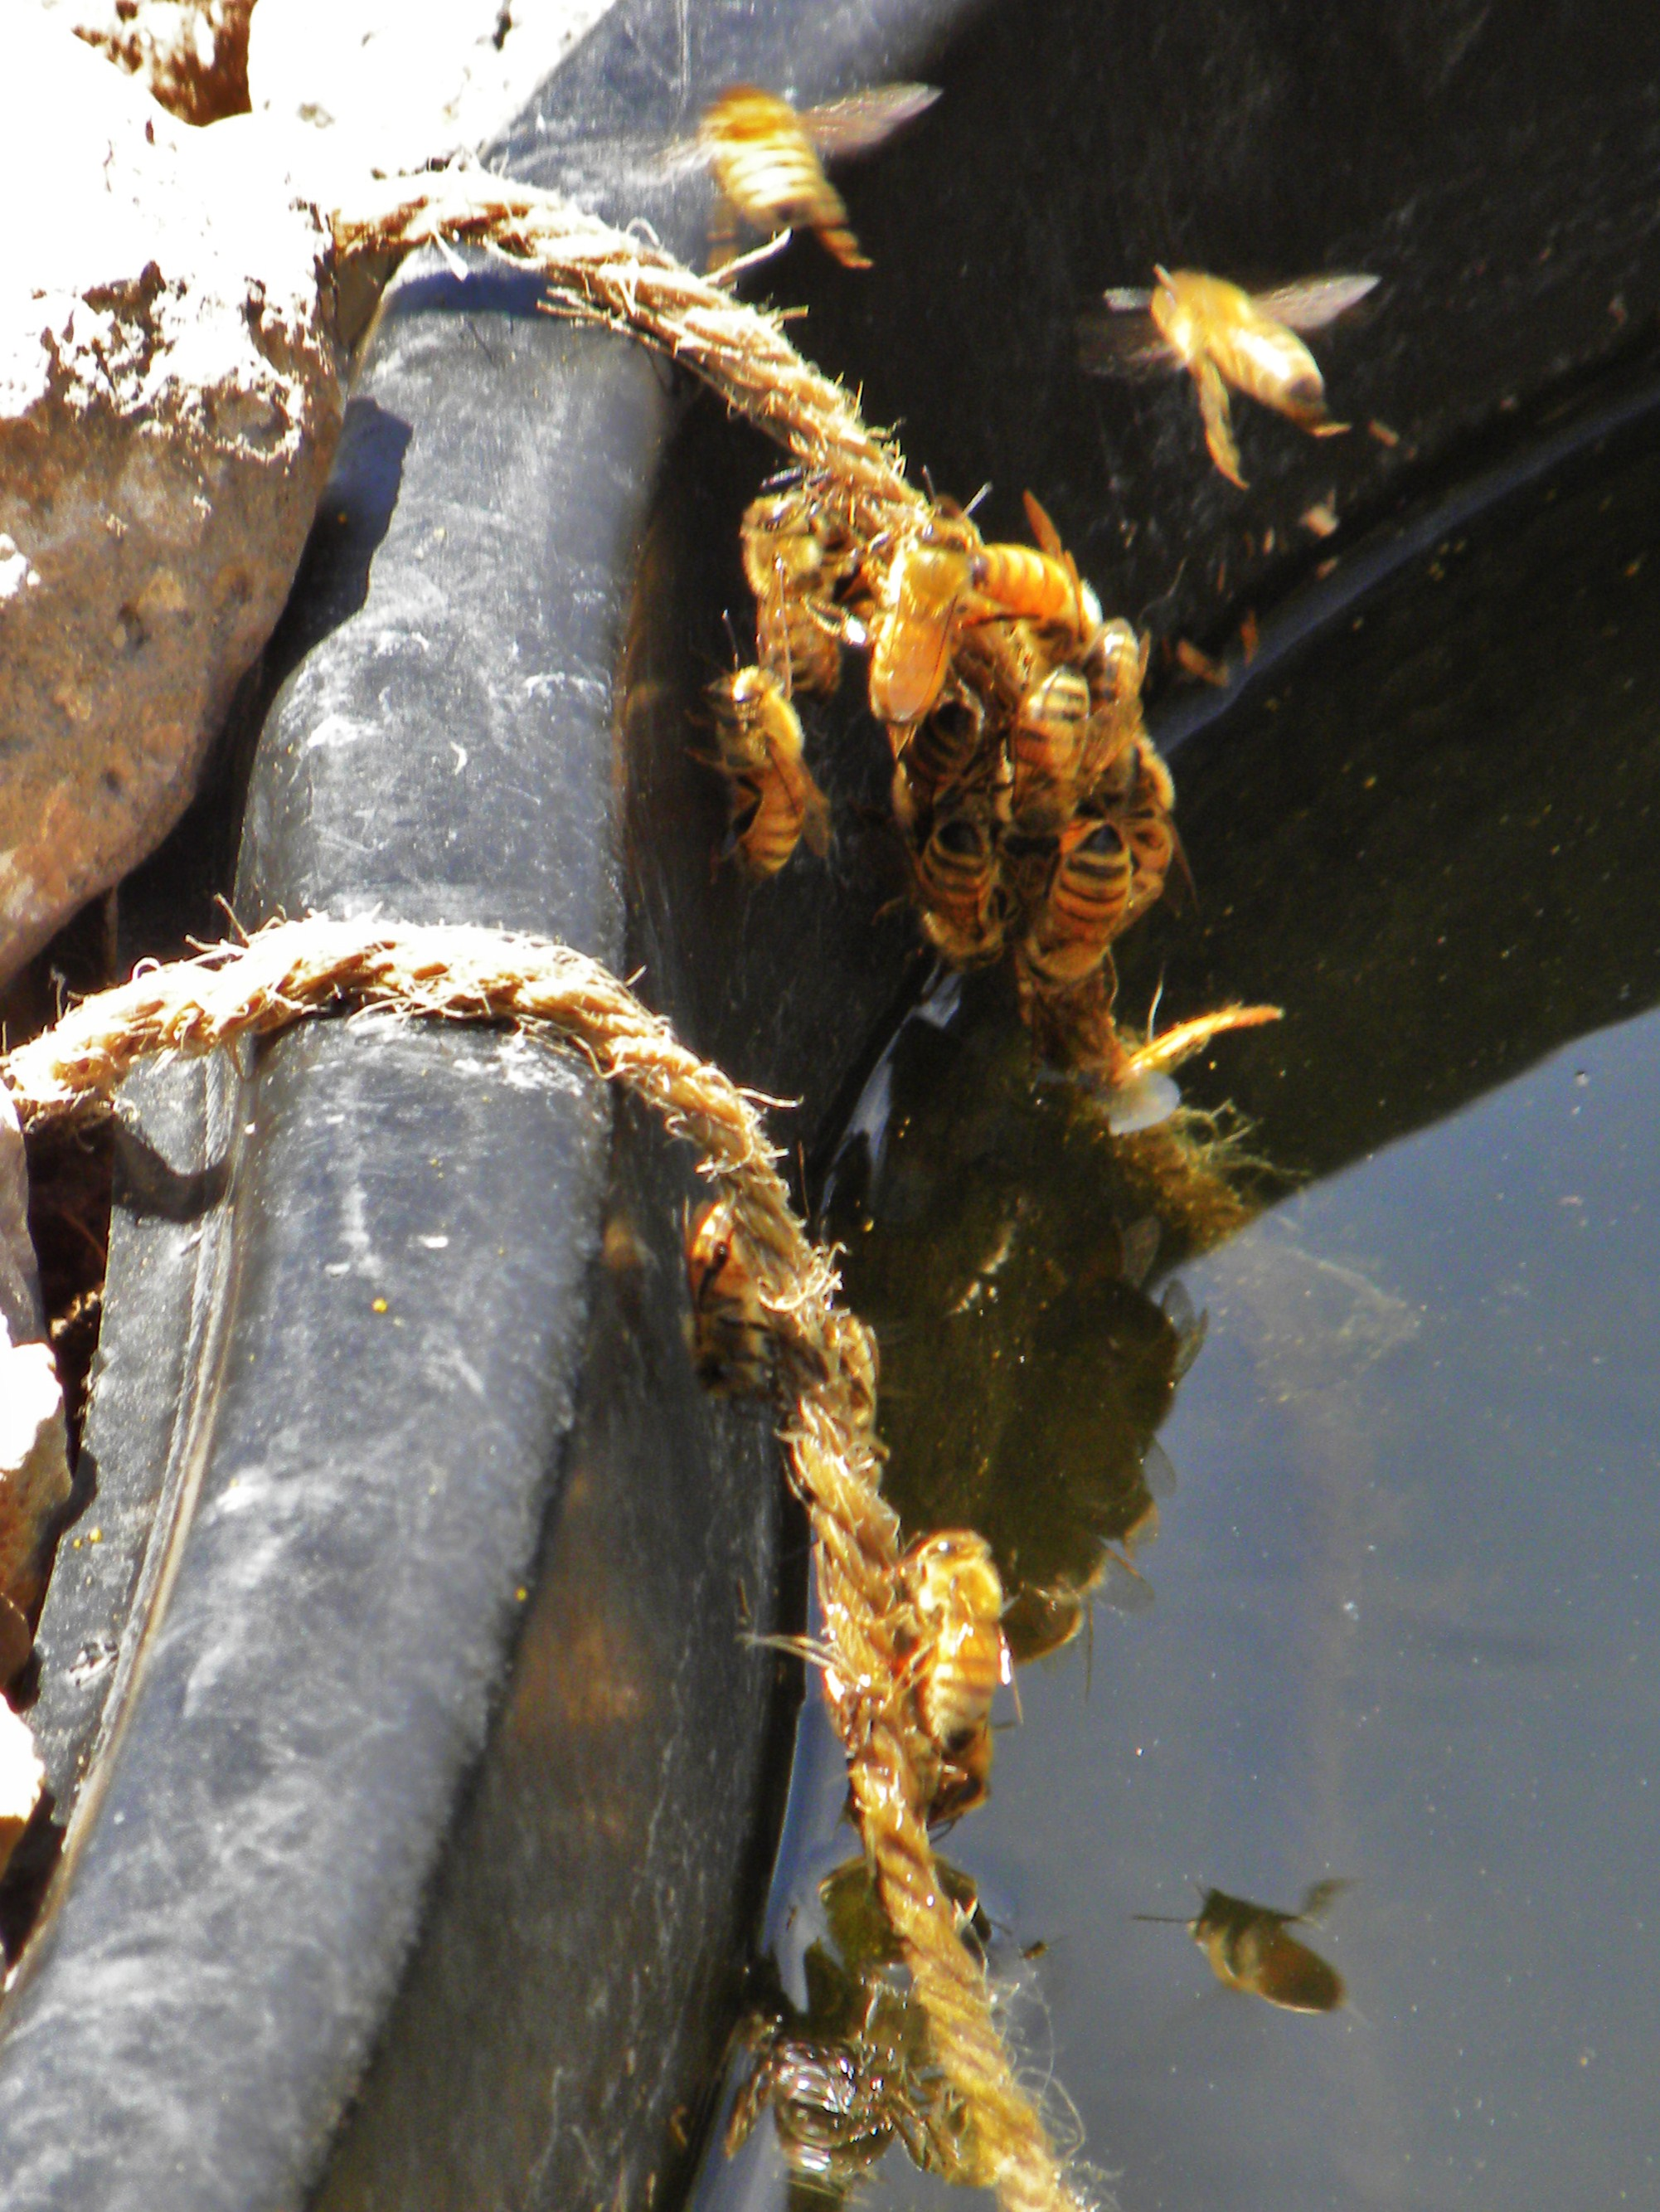 An phot of a honey bee community working together outside the hive